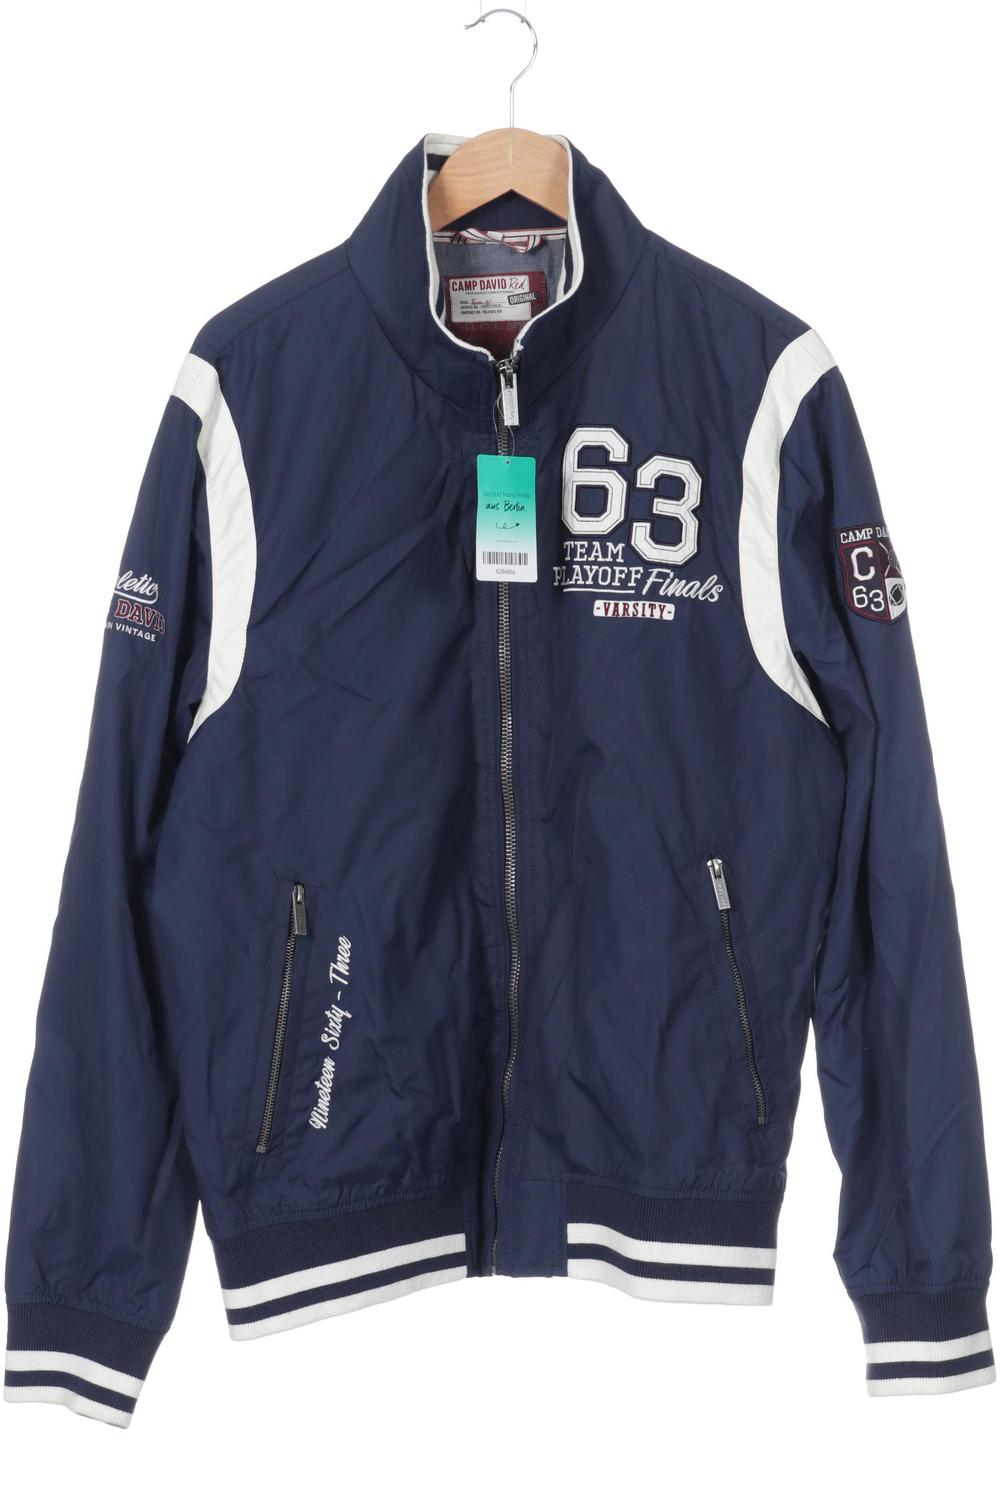 Camp David Herren Jacke INT XL Second Hand kaufen | ubup